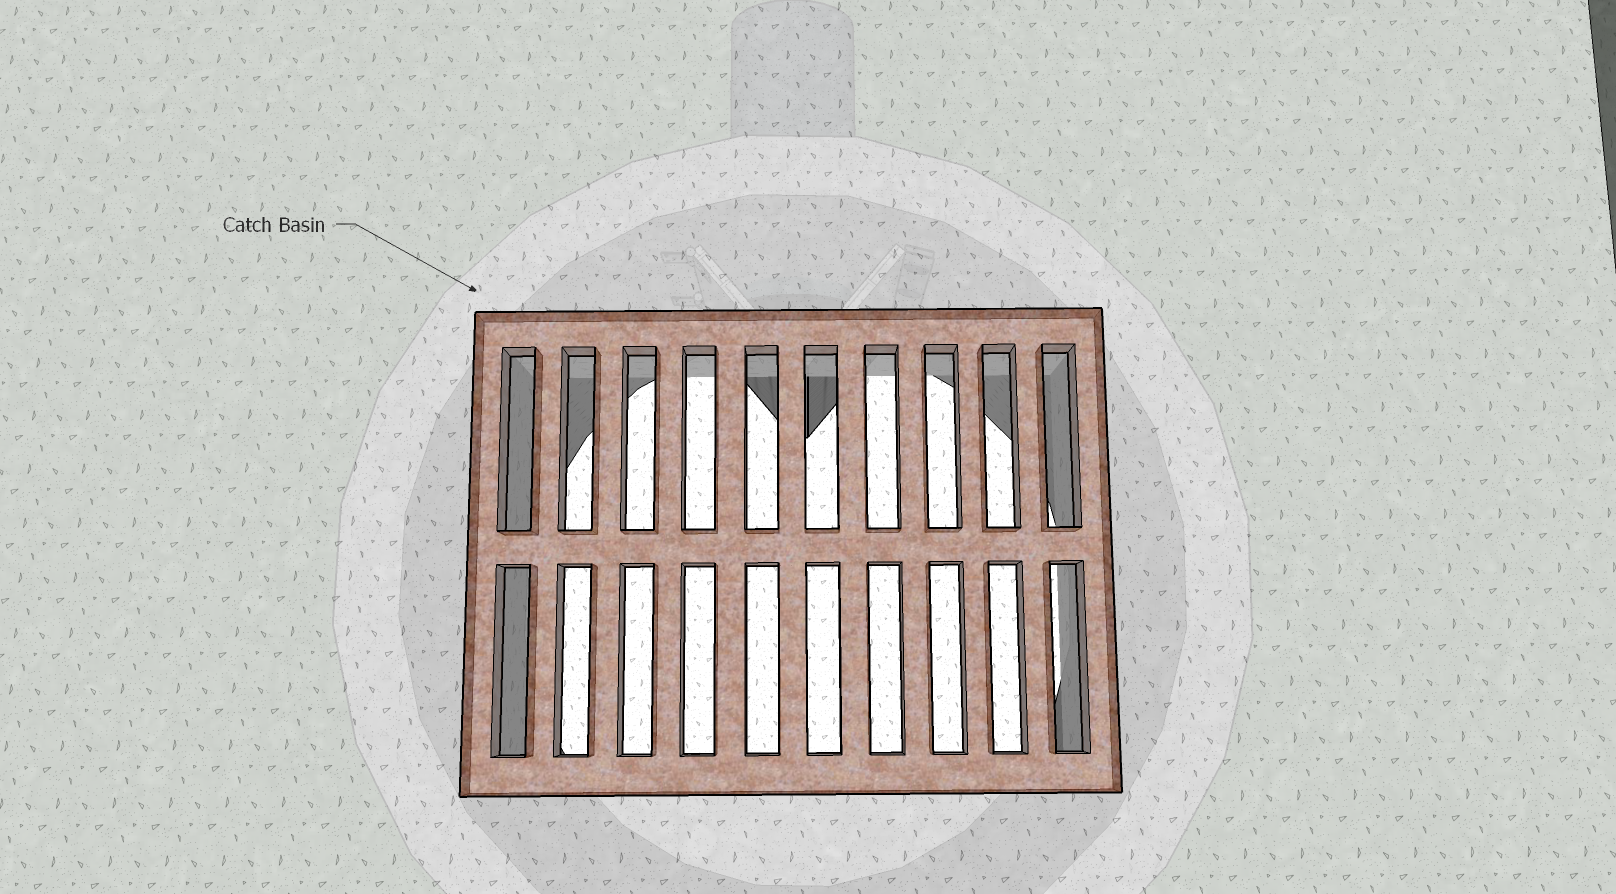 Top View with Grate and Asphalt - Translucent.png